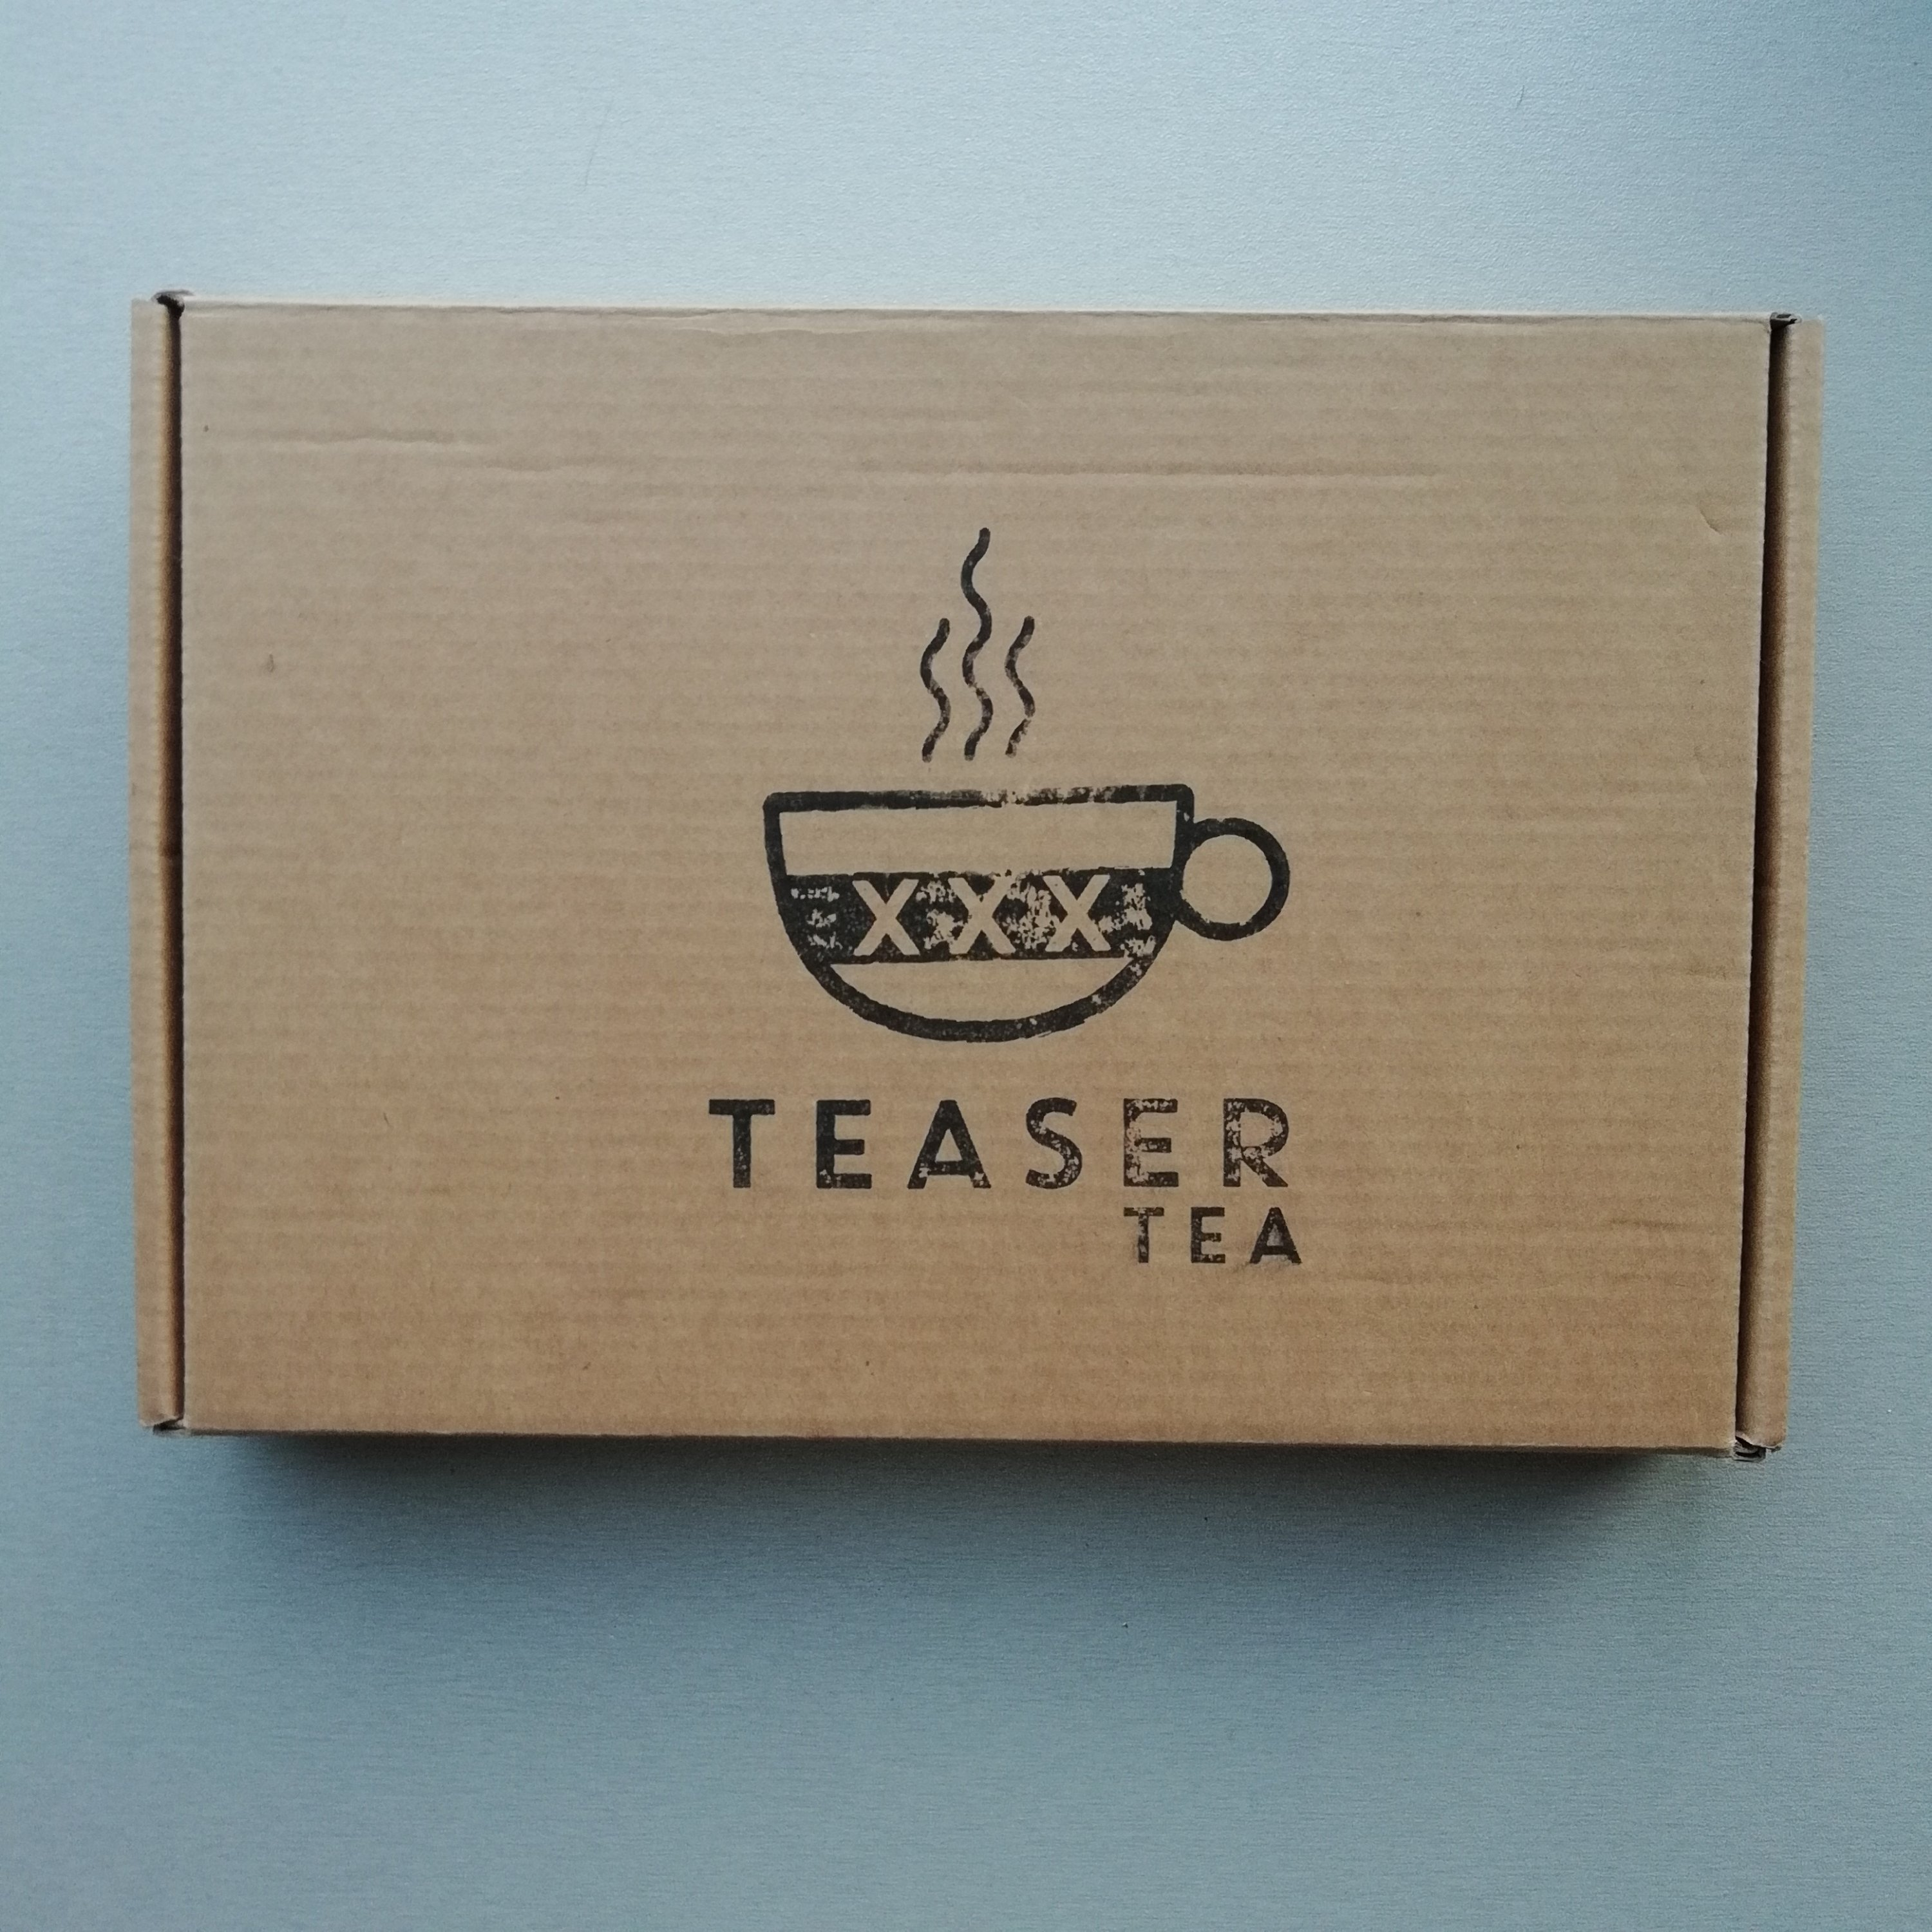 TEAser Tea subscription box